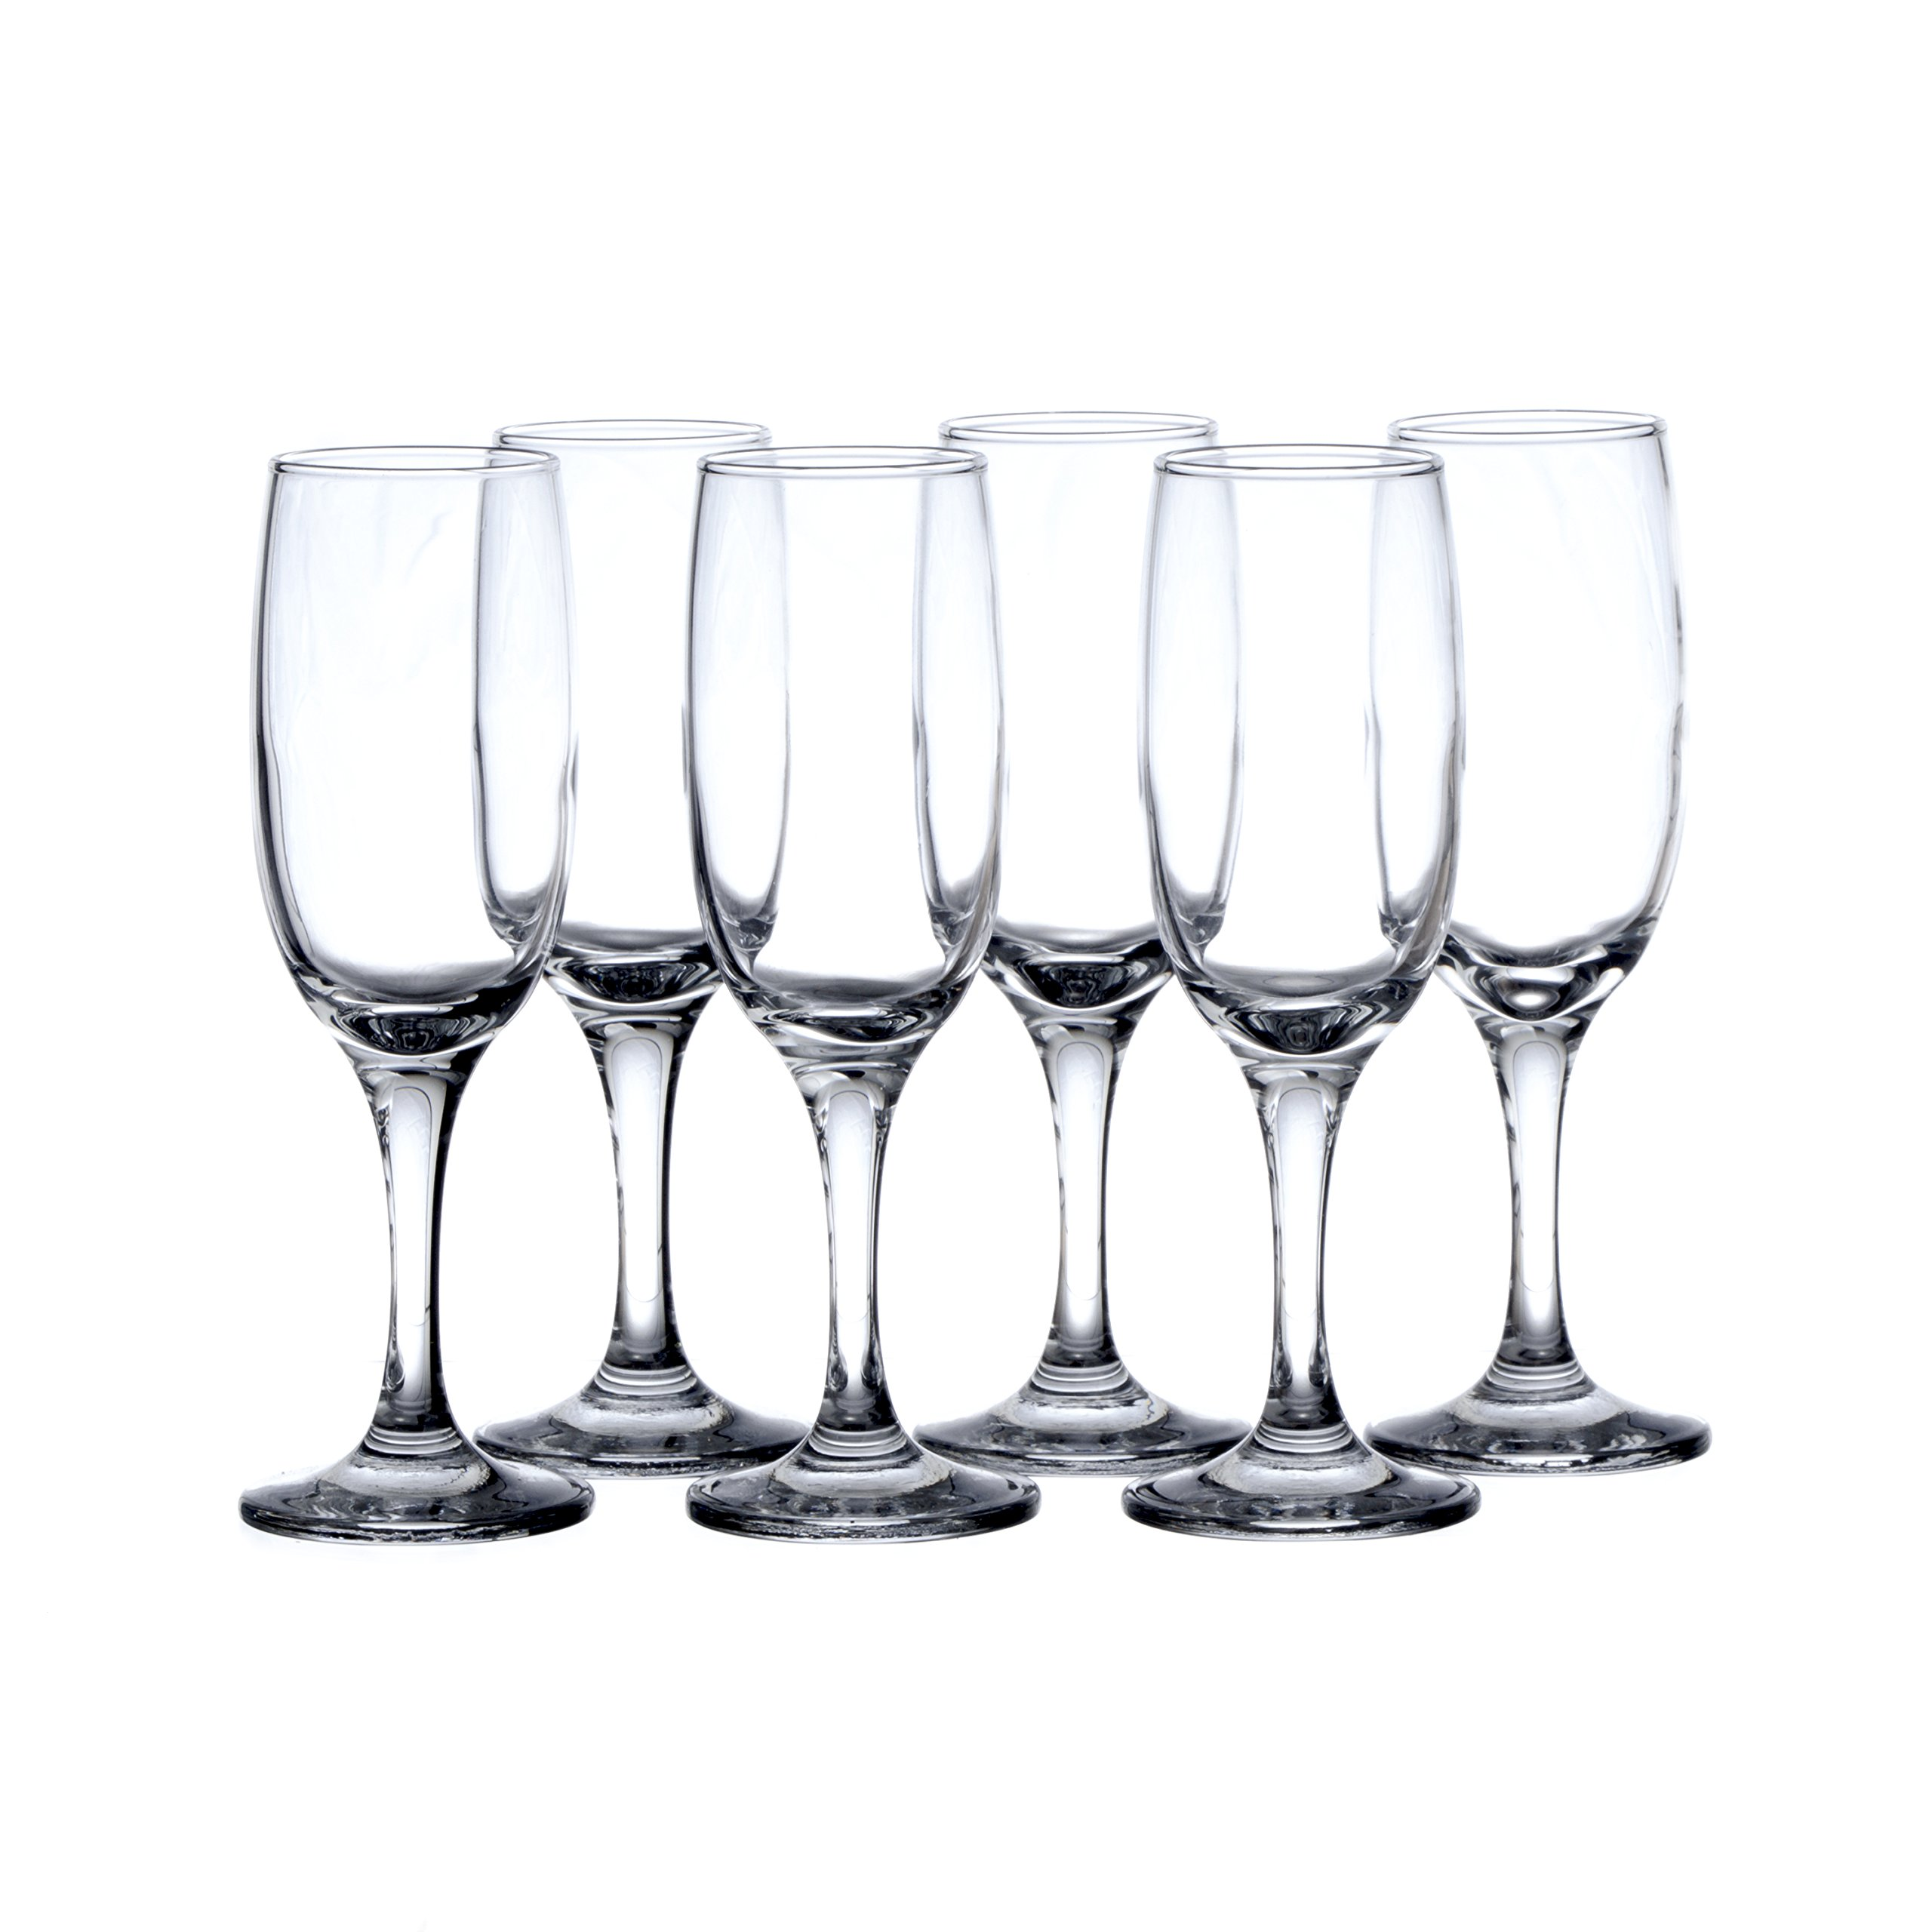 6-Piece Champagne Glasses Set - Crystal Flute Glass, Heavy Base, Restaurants&Hotel Quality, 6 1/4 oz. / 190 ml, Durable Tempered Glass, t.m. Pasabache Professional